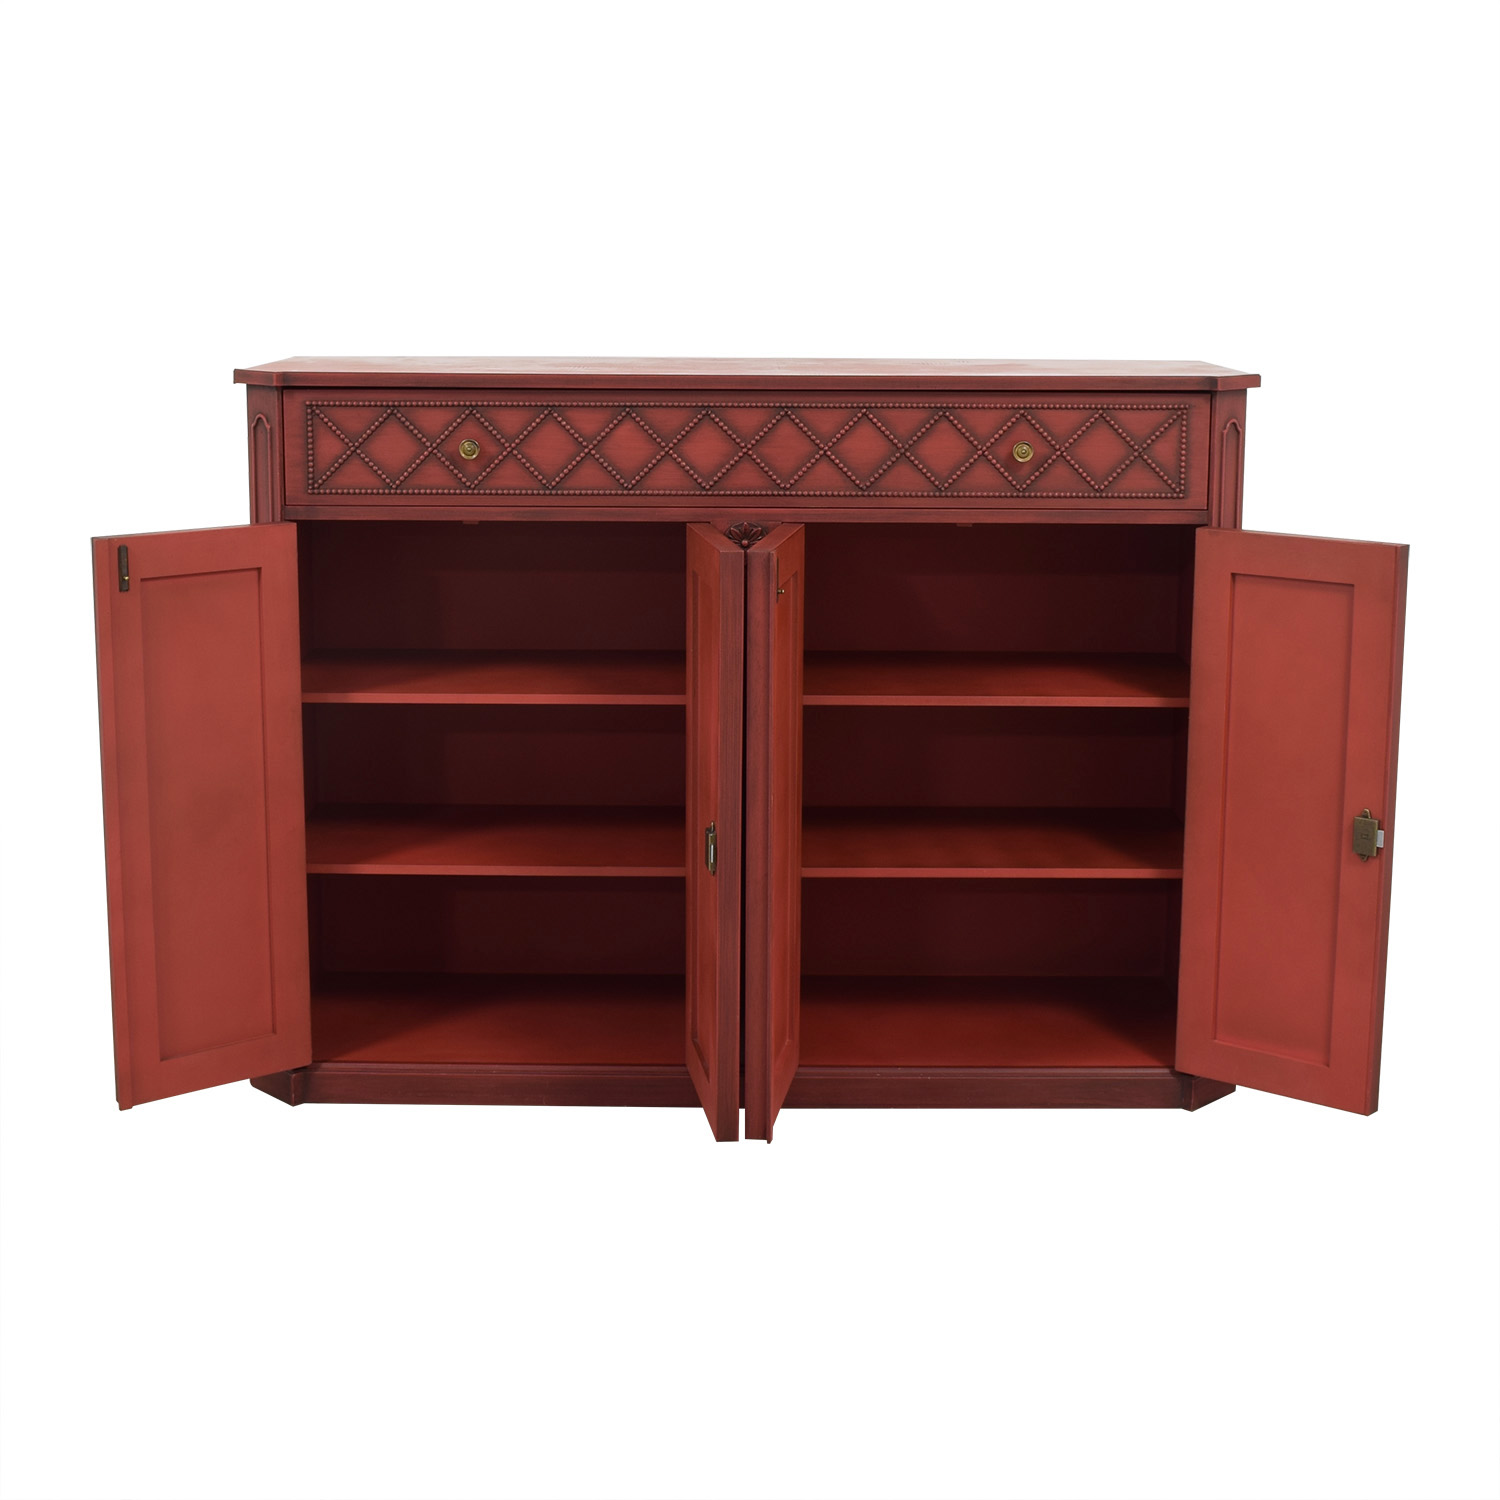 Domain Home Domain Home Buffet Cabinet dimensions